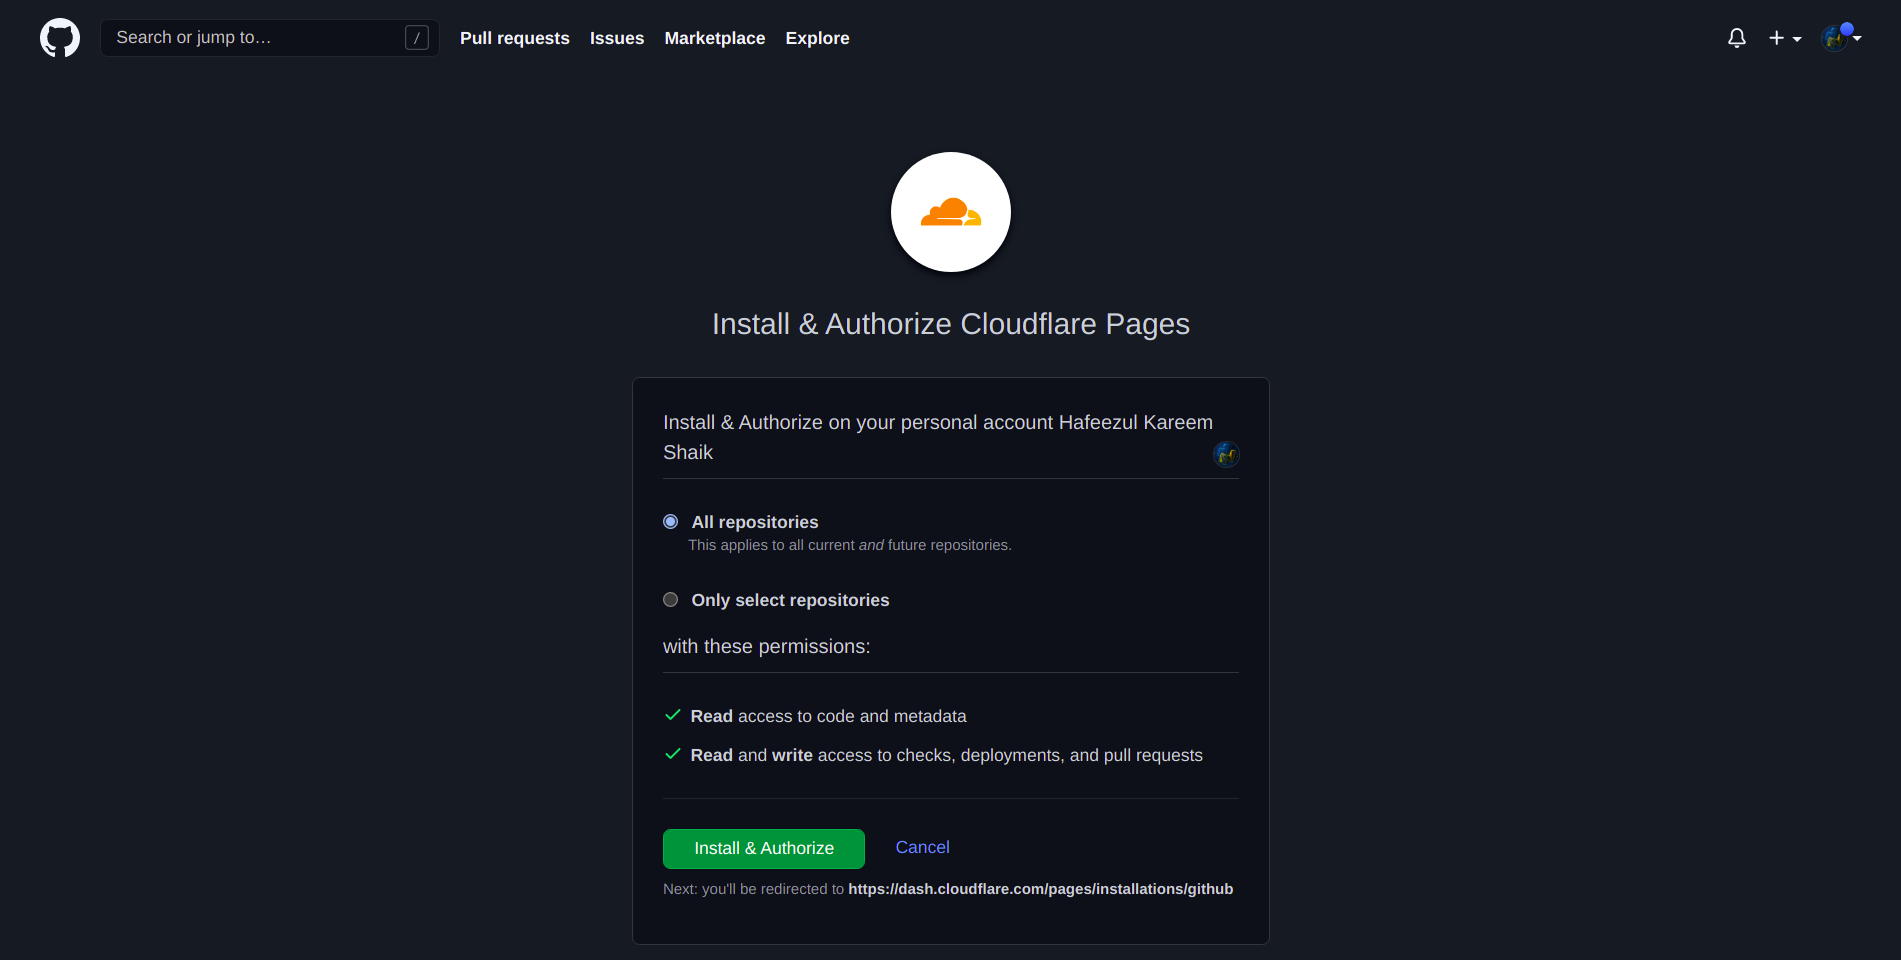 GitHub Cloudflare Pages Authorization